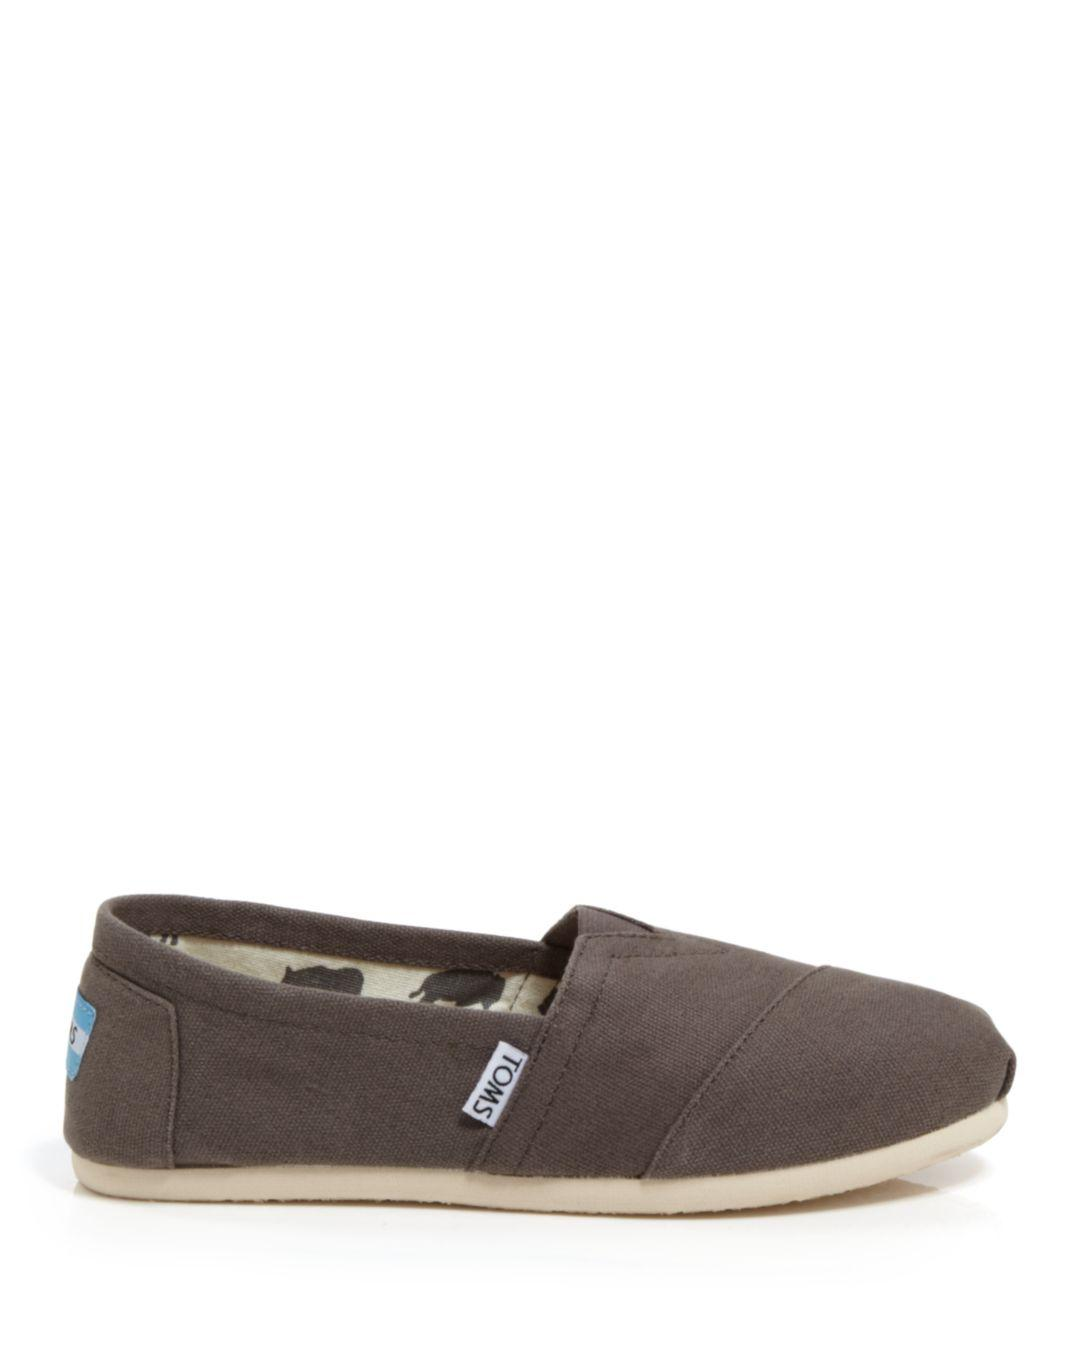 d37702dc233 Lyst - TOMS Women s Classic Canvas Slip-ons in Black